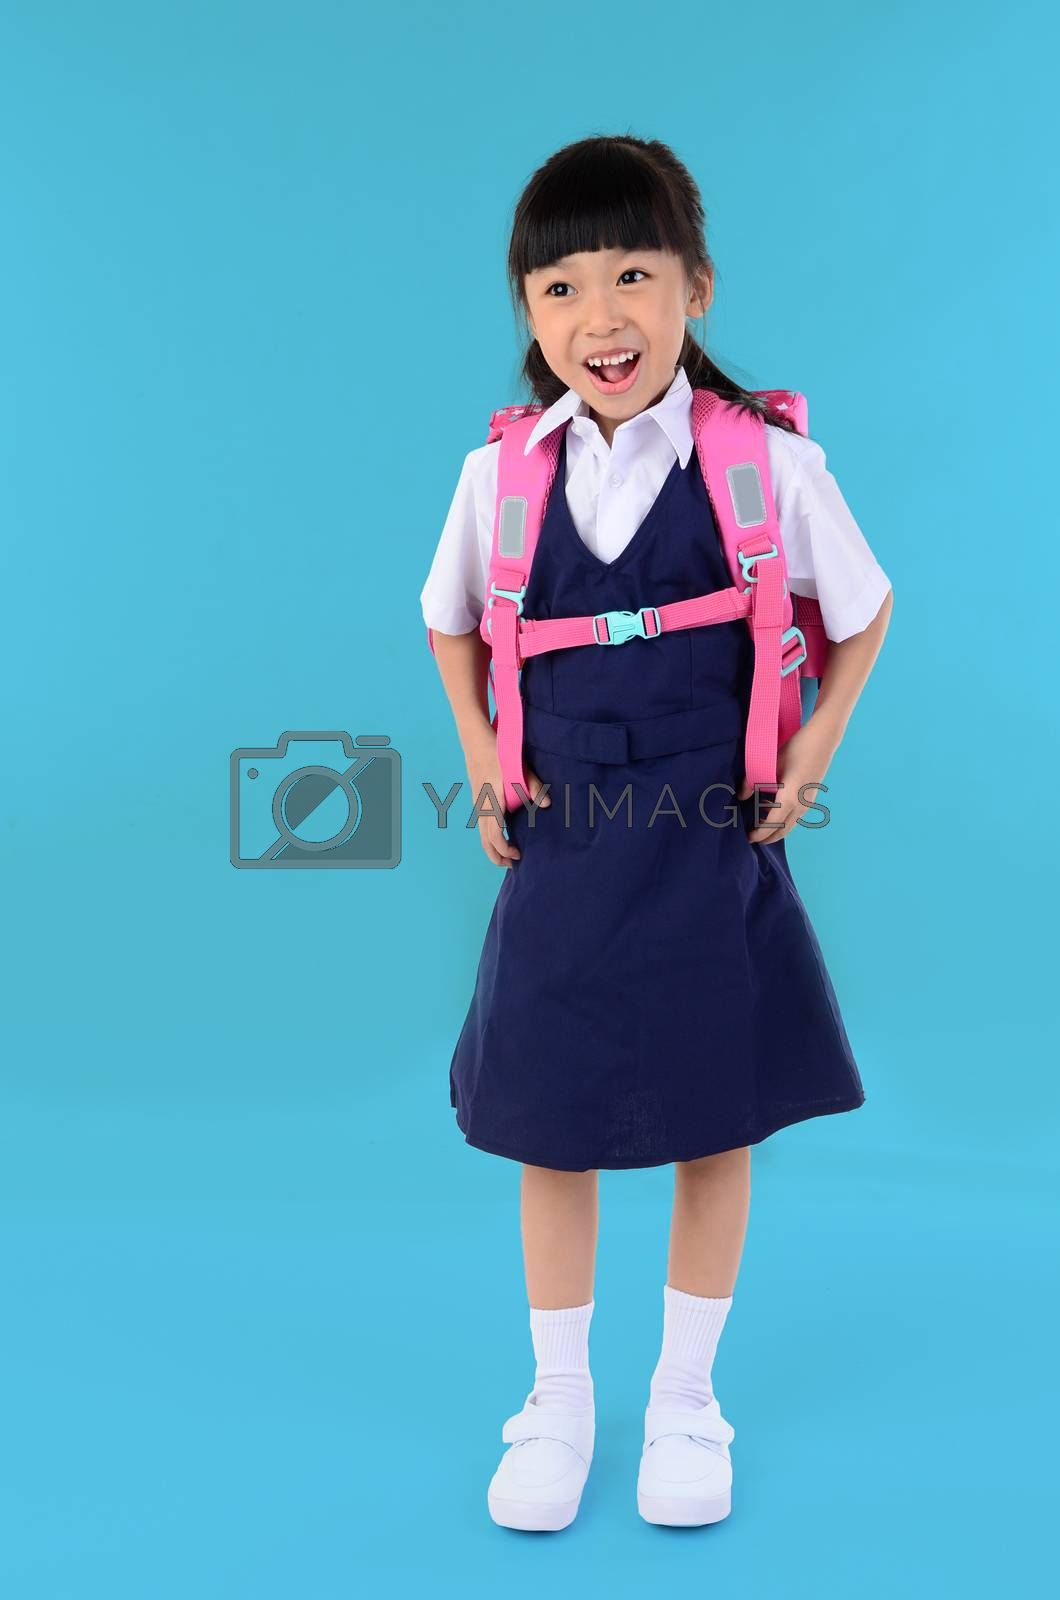 Back to school. Portrait of happy asian cute little child girl in uniform with school bag smiling when go back to school, isolated blue background.